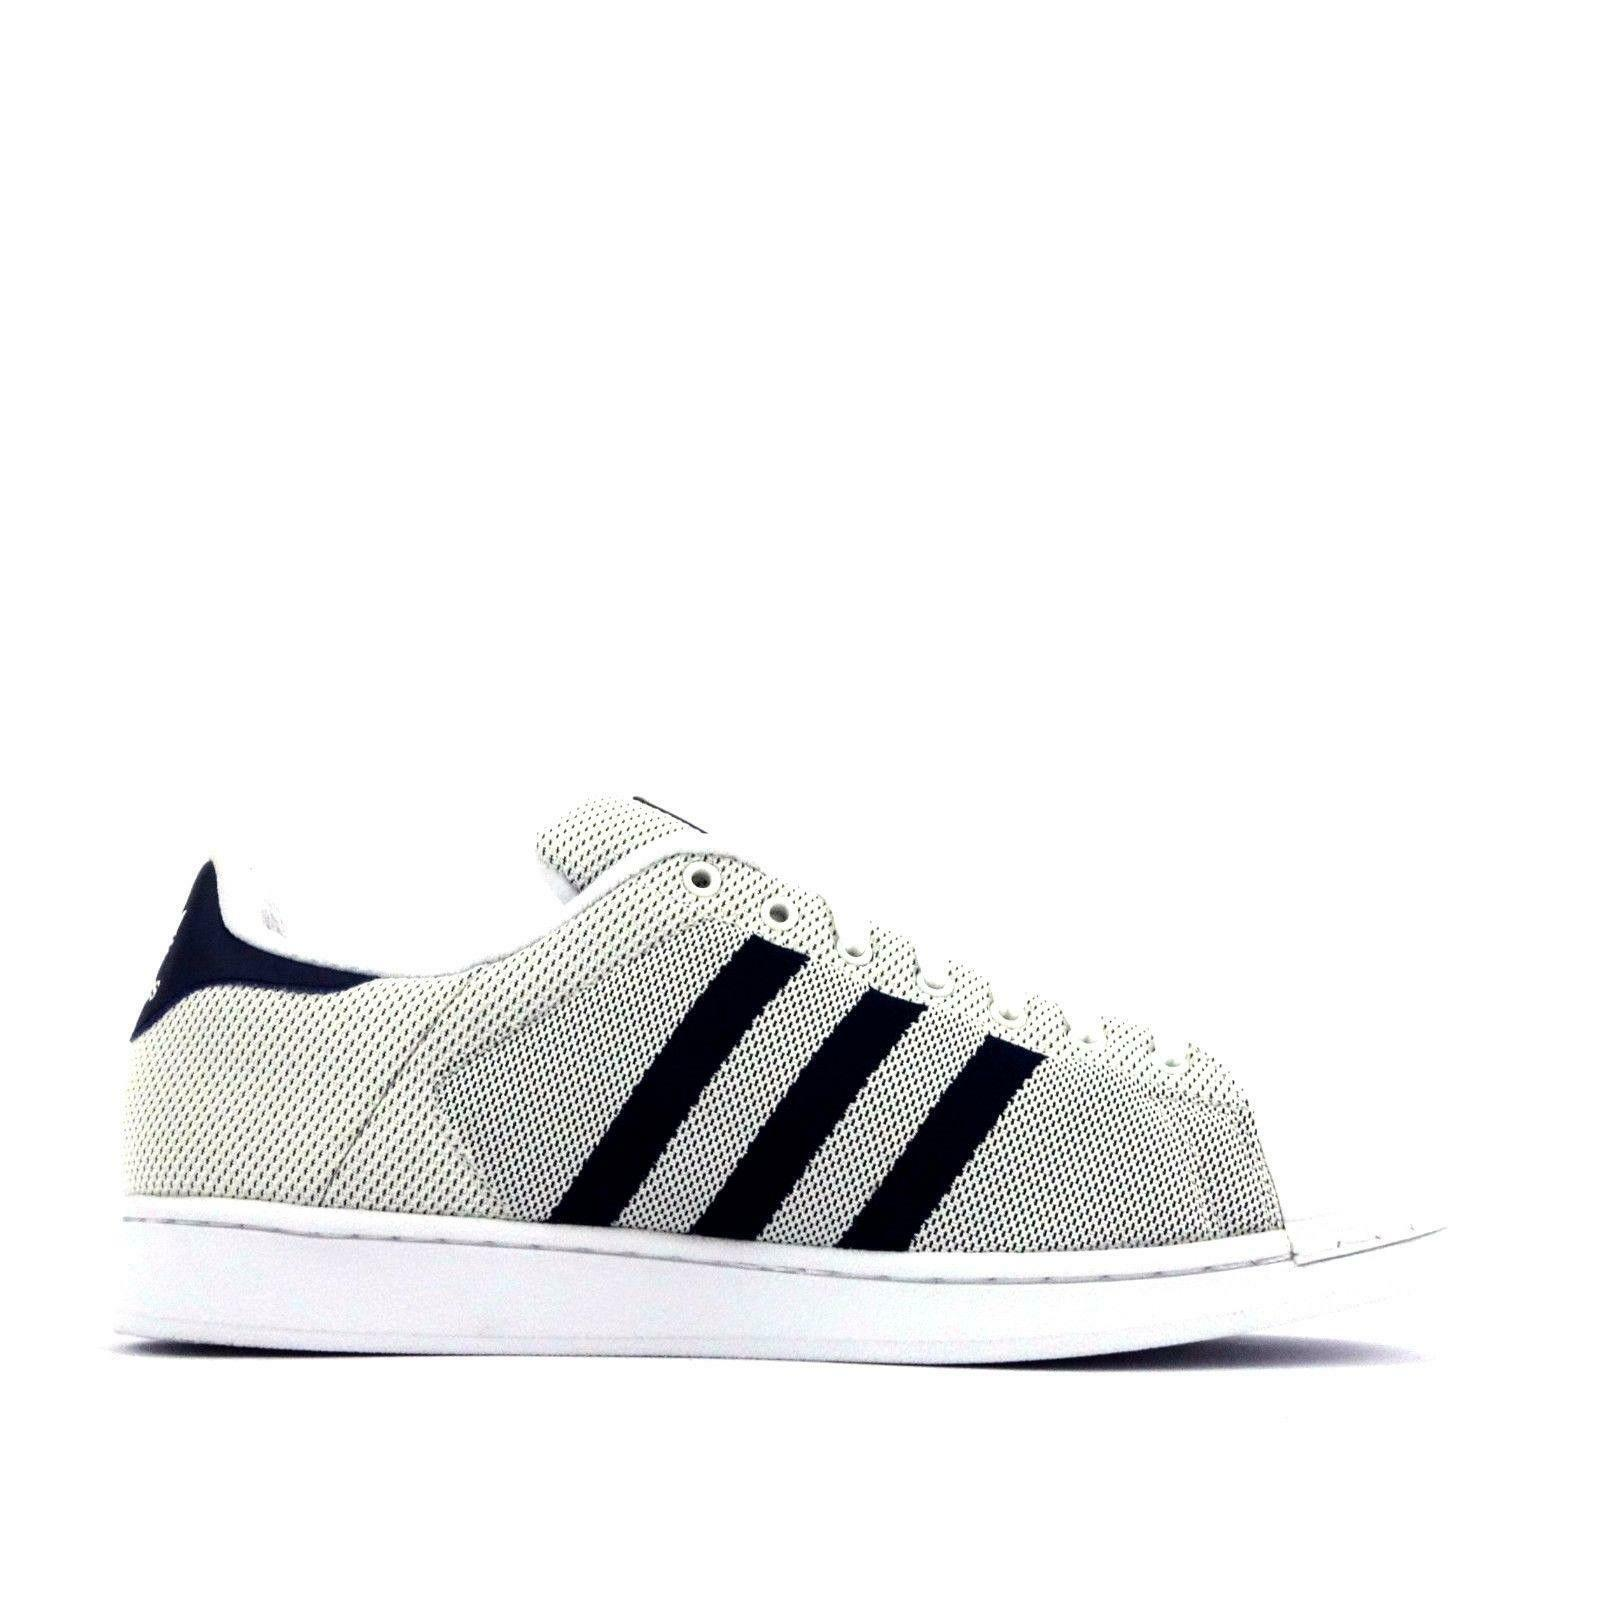 Mens ADIDAS SUPERSTAR White Navy Blue Textile Casual Trainers BB5795